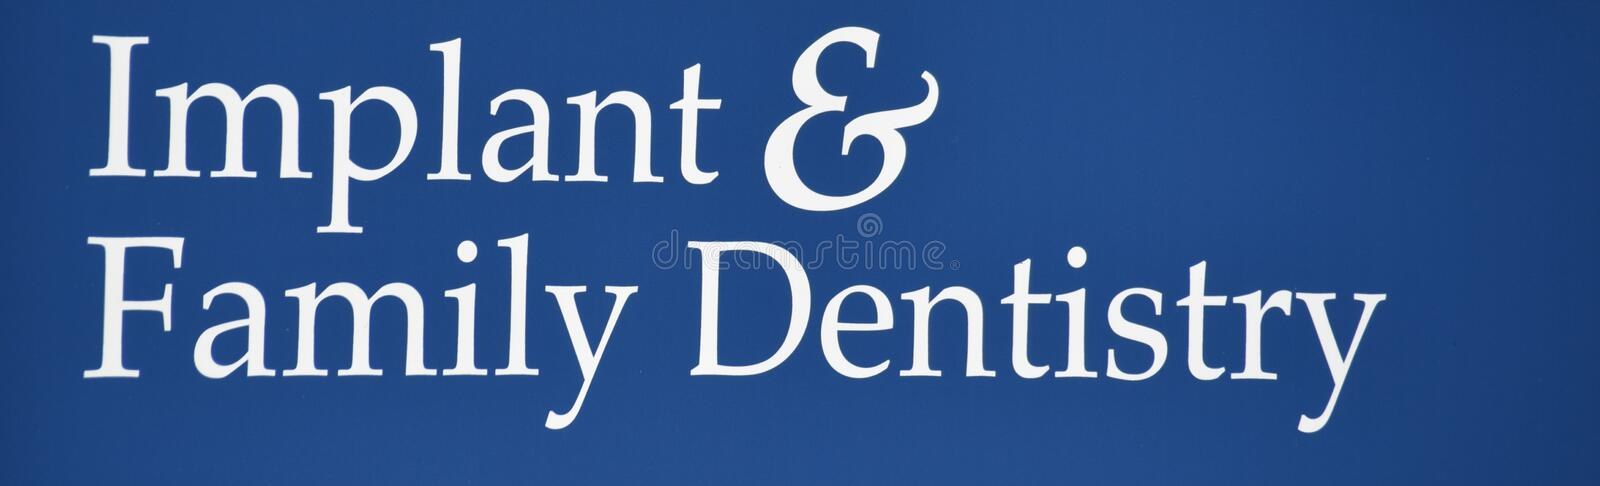 Implant and Family Dentistry royalty free stock image